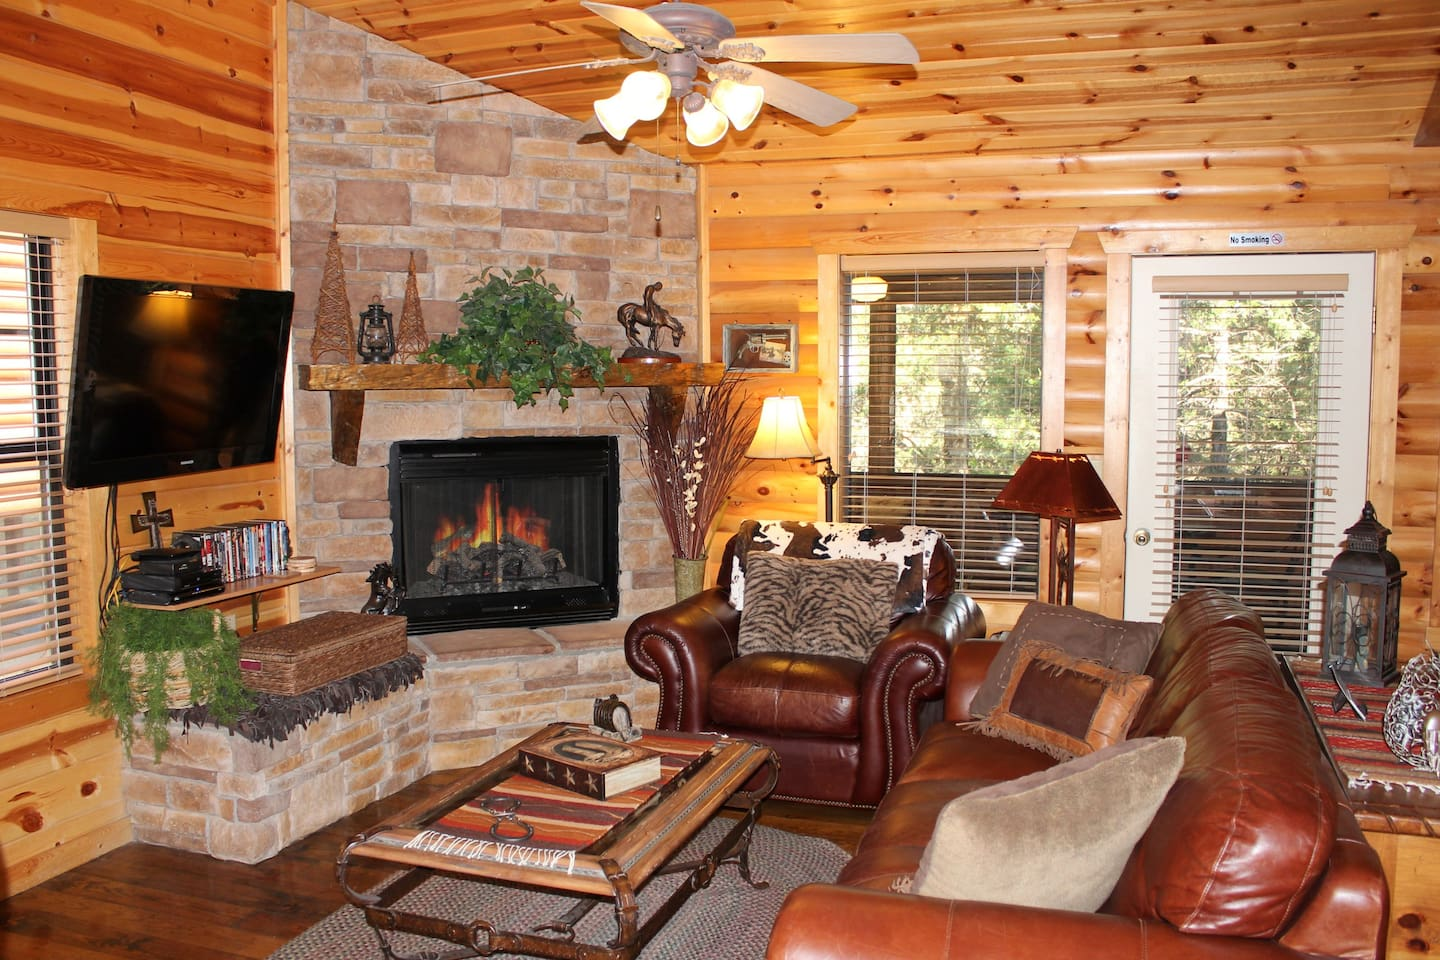 The Wild Rose Cabin has a calming, relaxing & just great homey vibe to it. Very serene and relaxing.